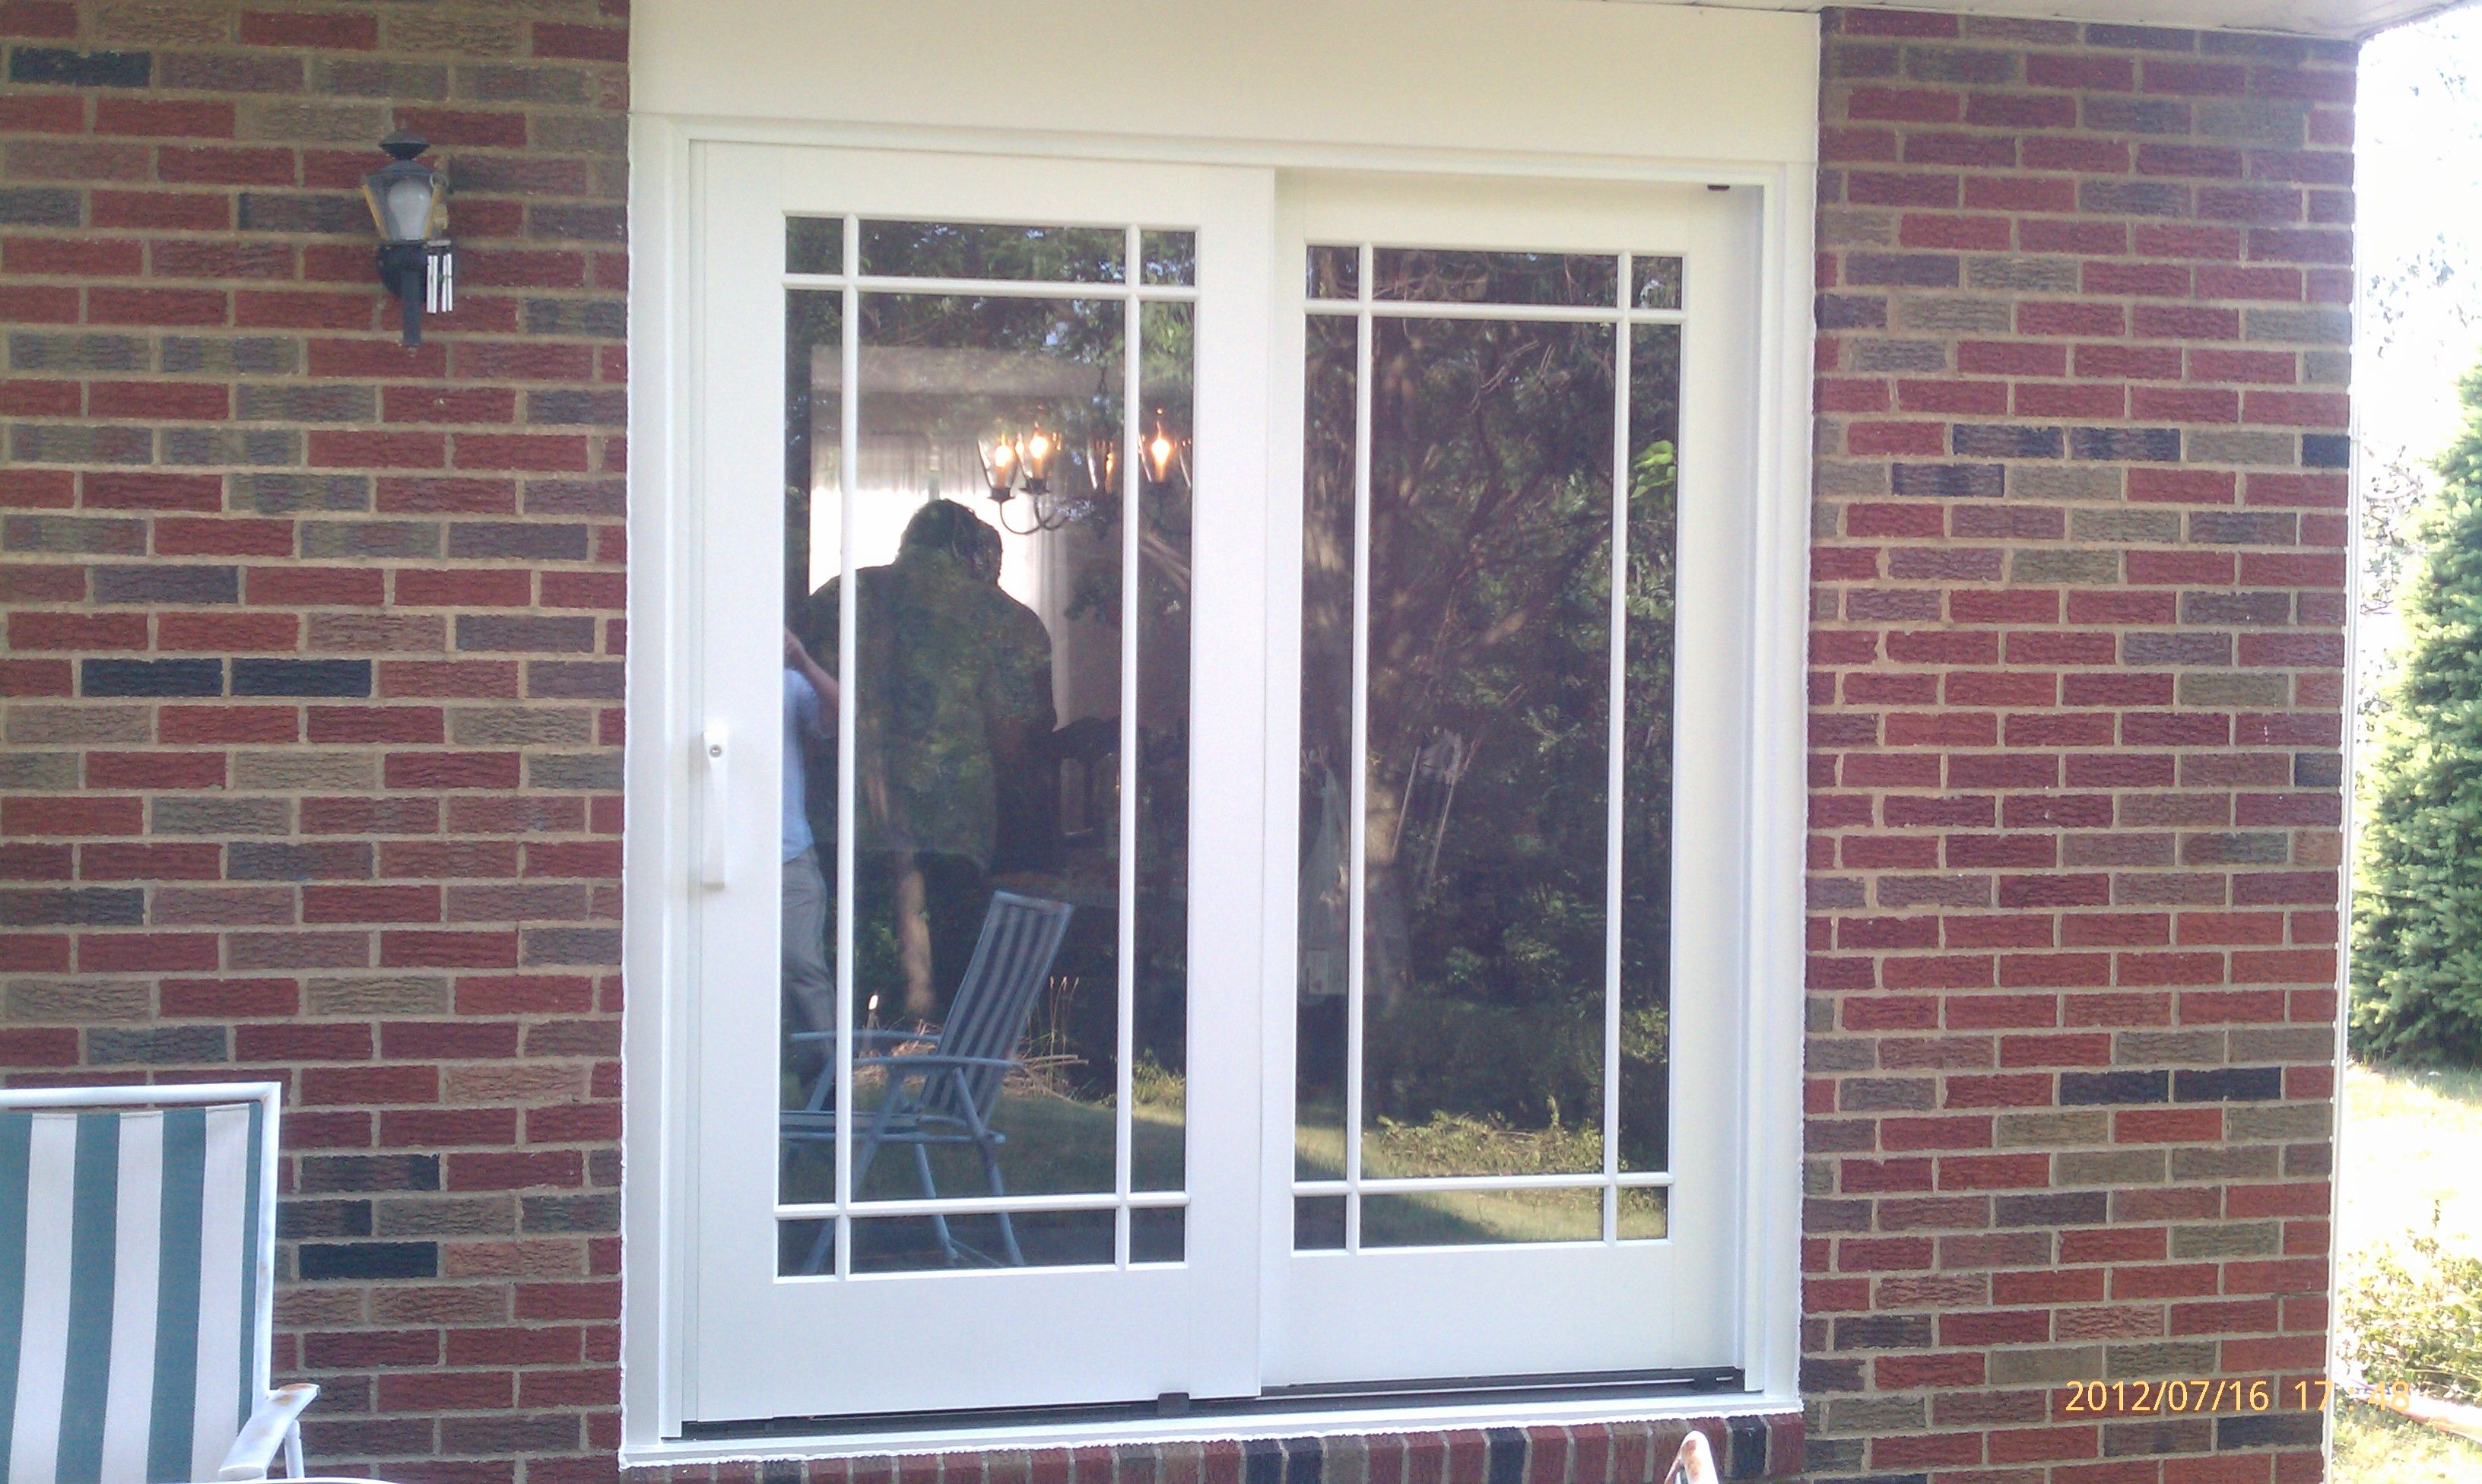 pella french sliding door in moon pa ideas for the house pella french sliding door in moon pa ideas for the house pinterest sliding door doors and house